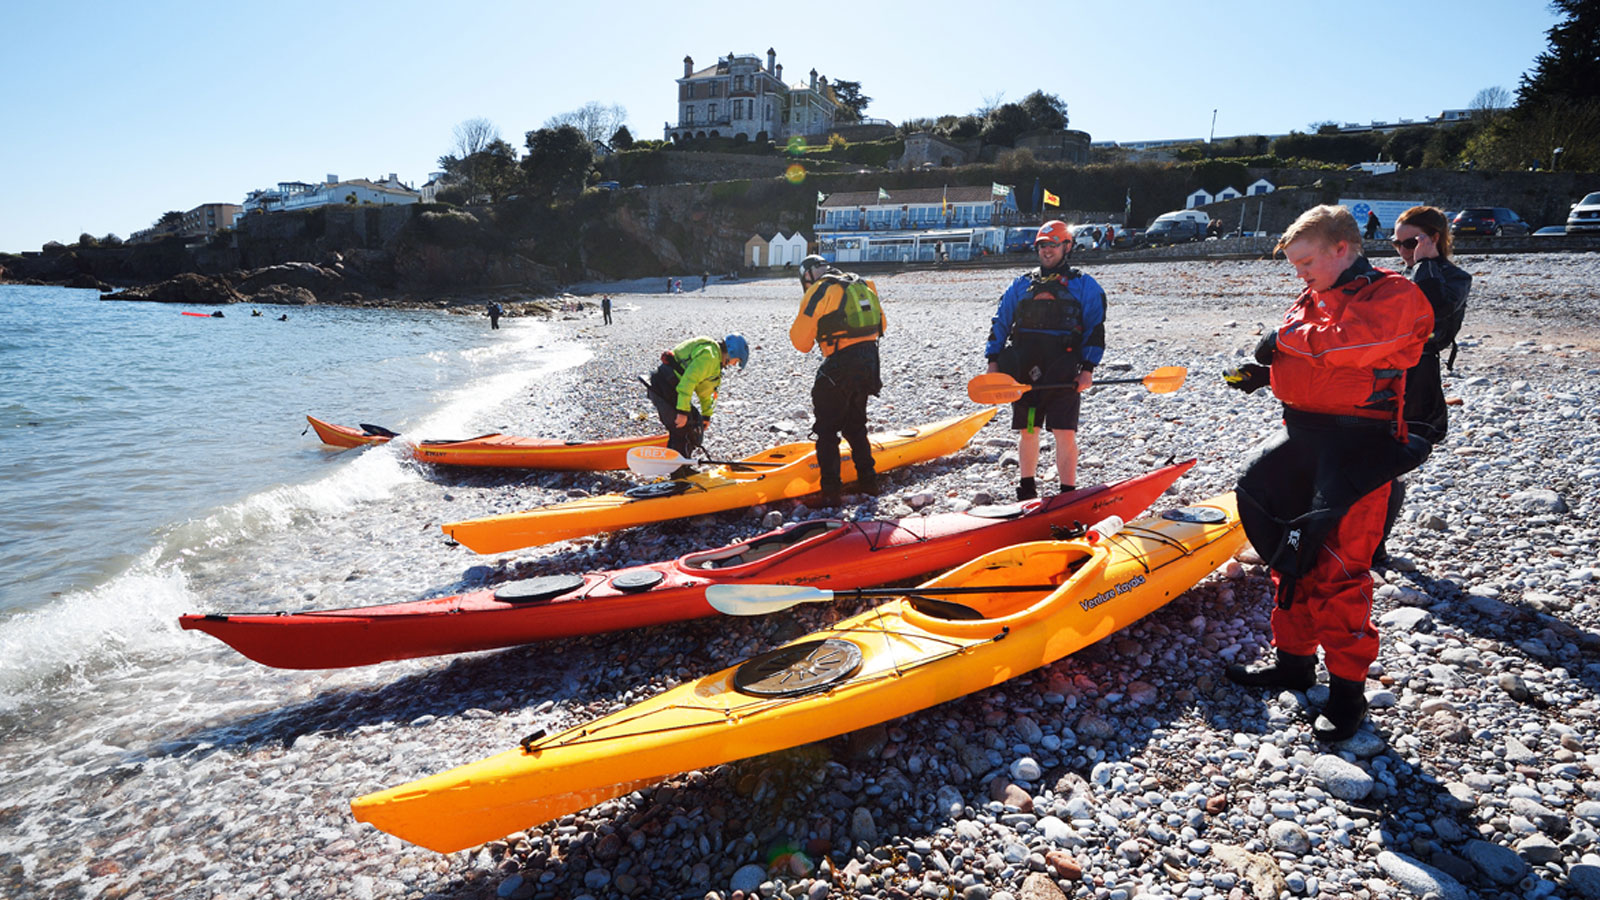 Kayaking training session on the beach